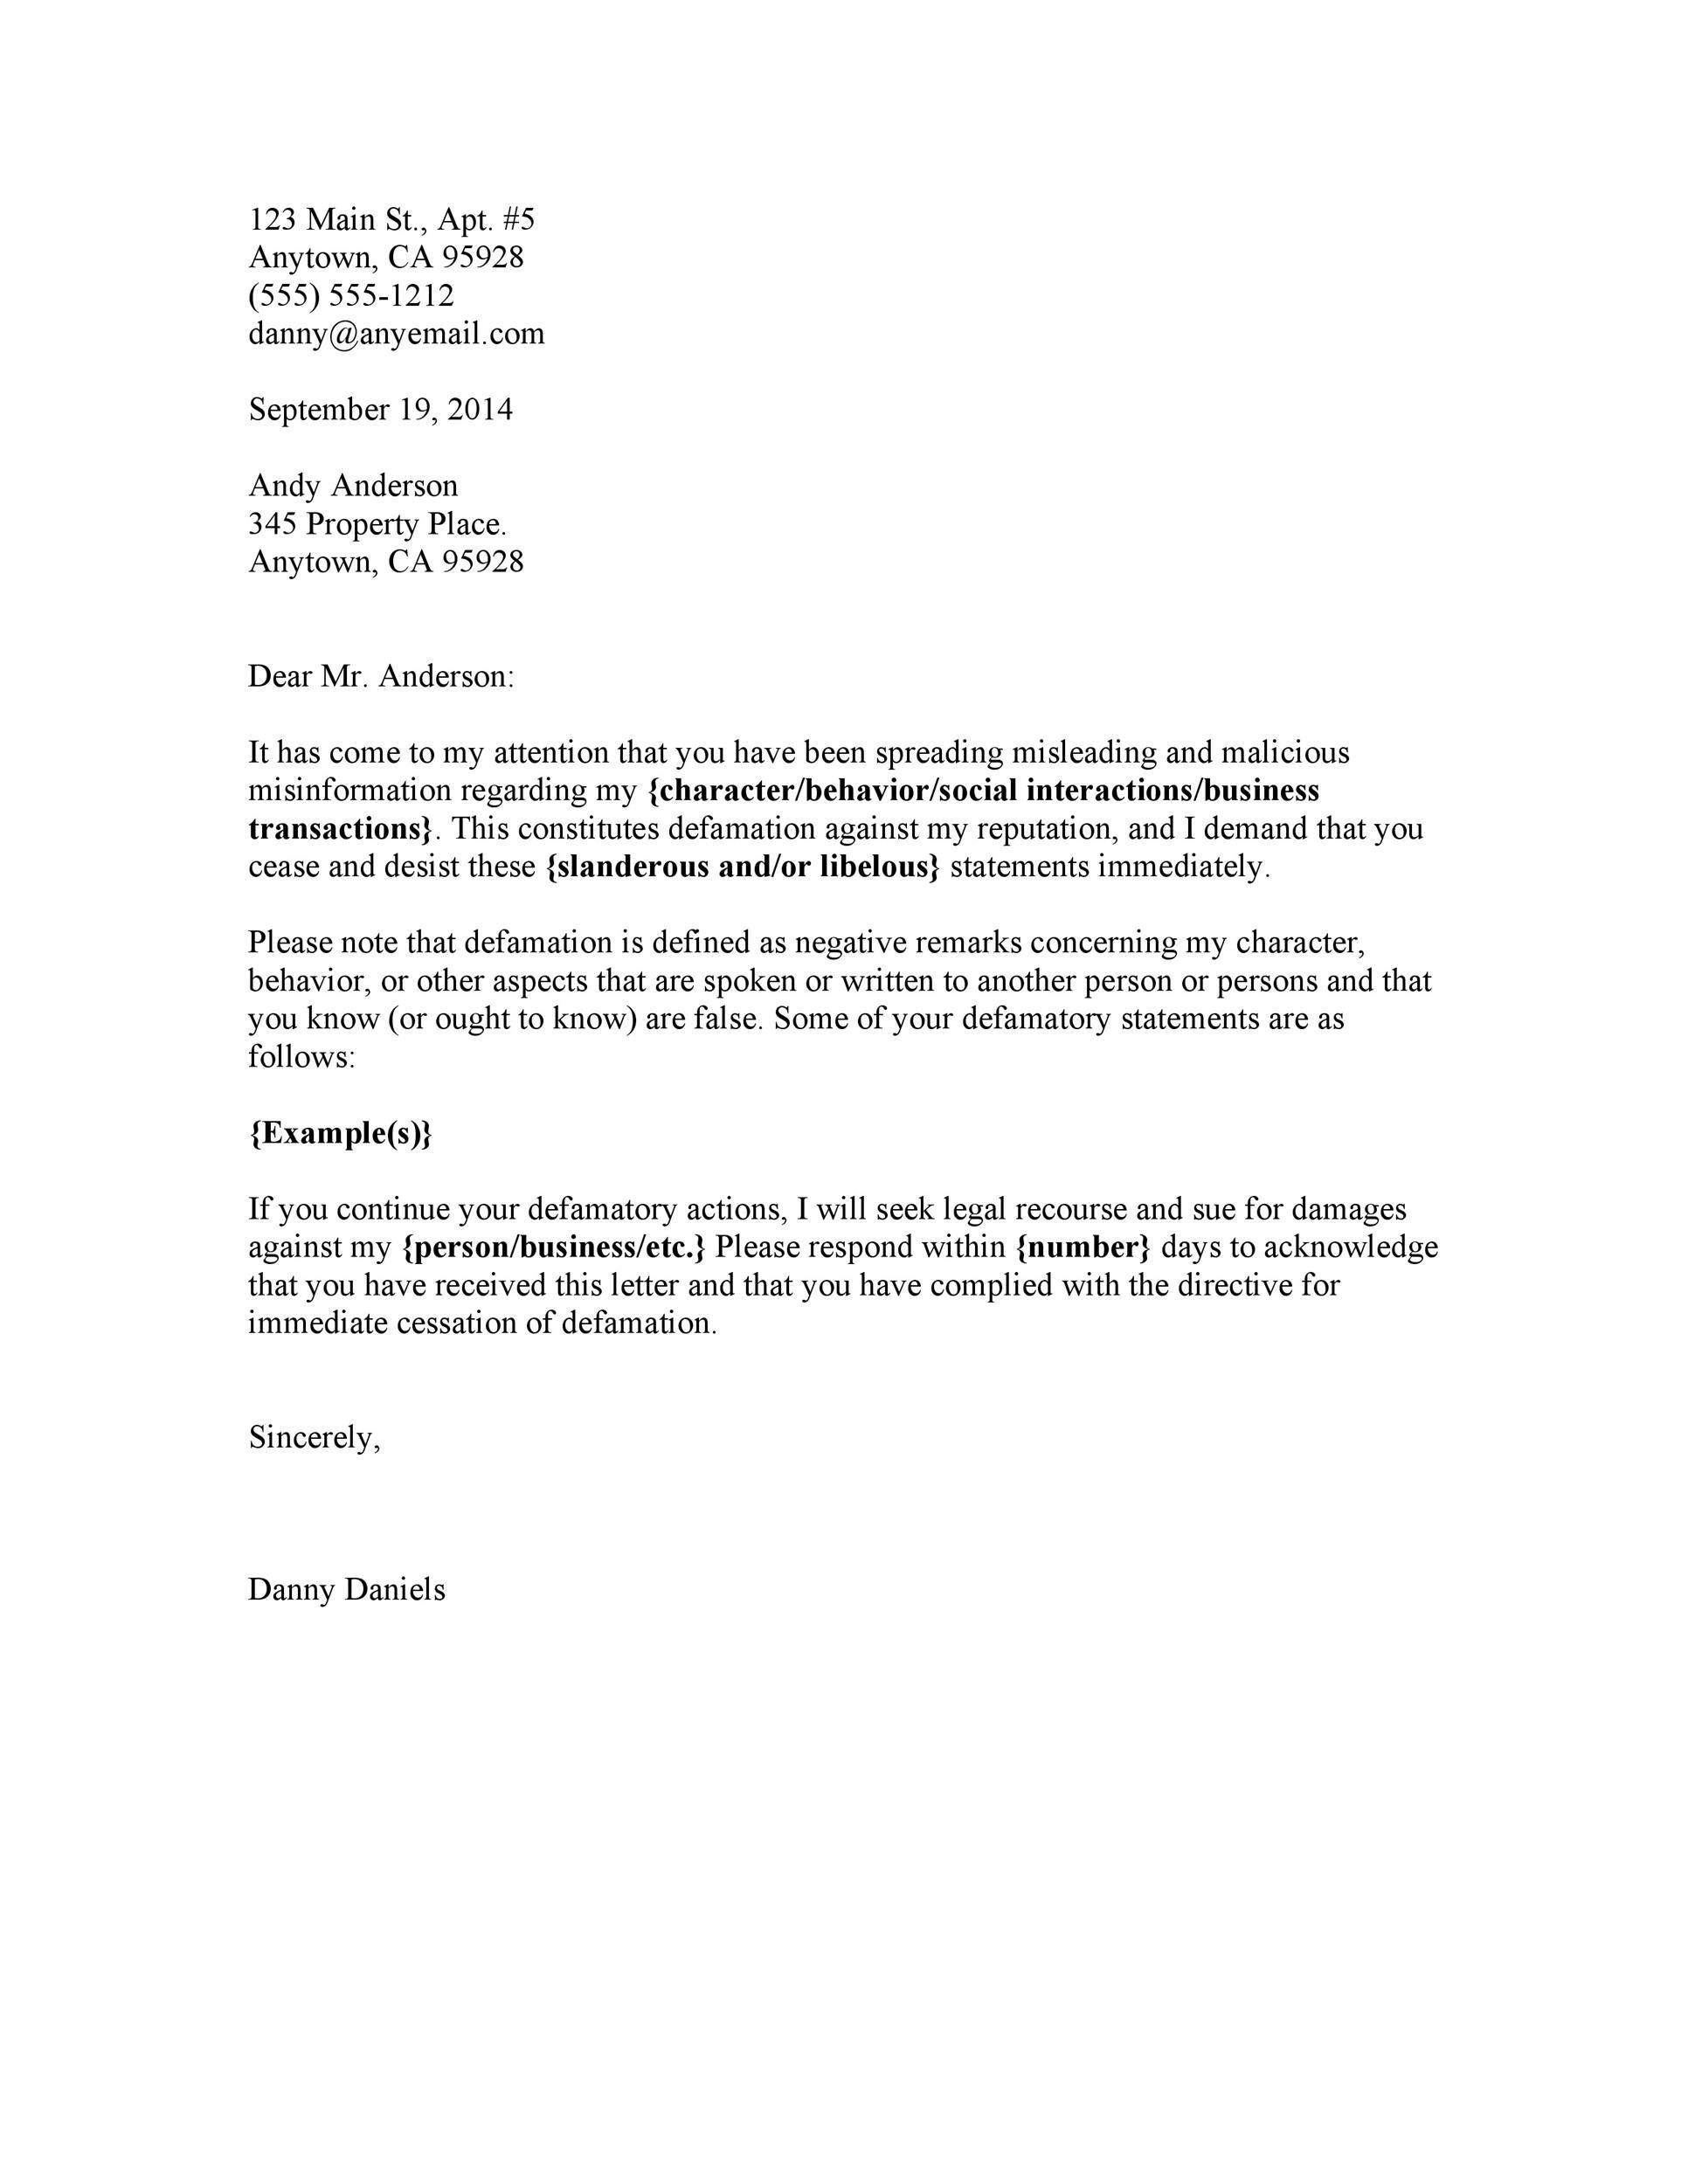 Property Damage Letter Template  Letter Template